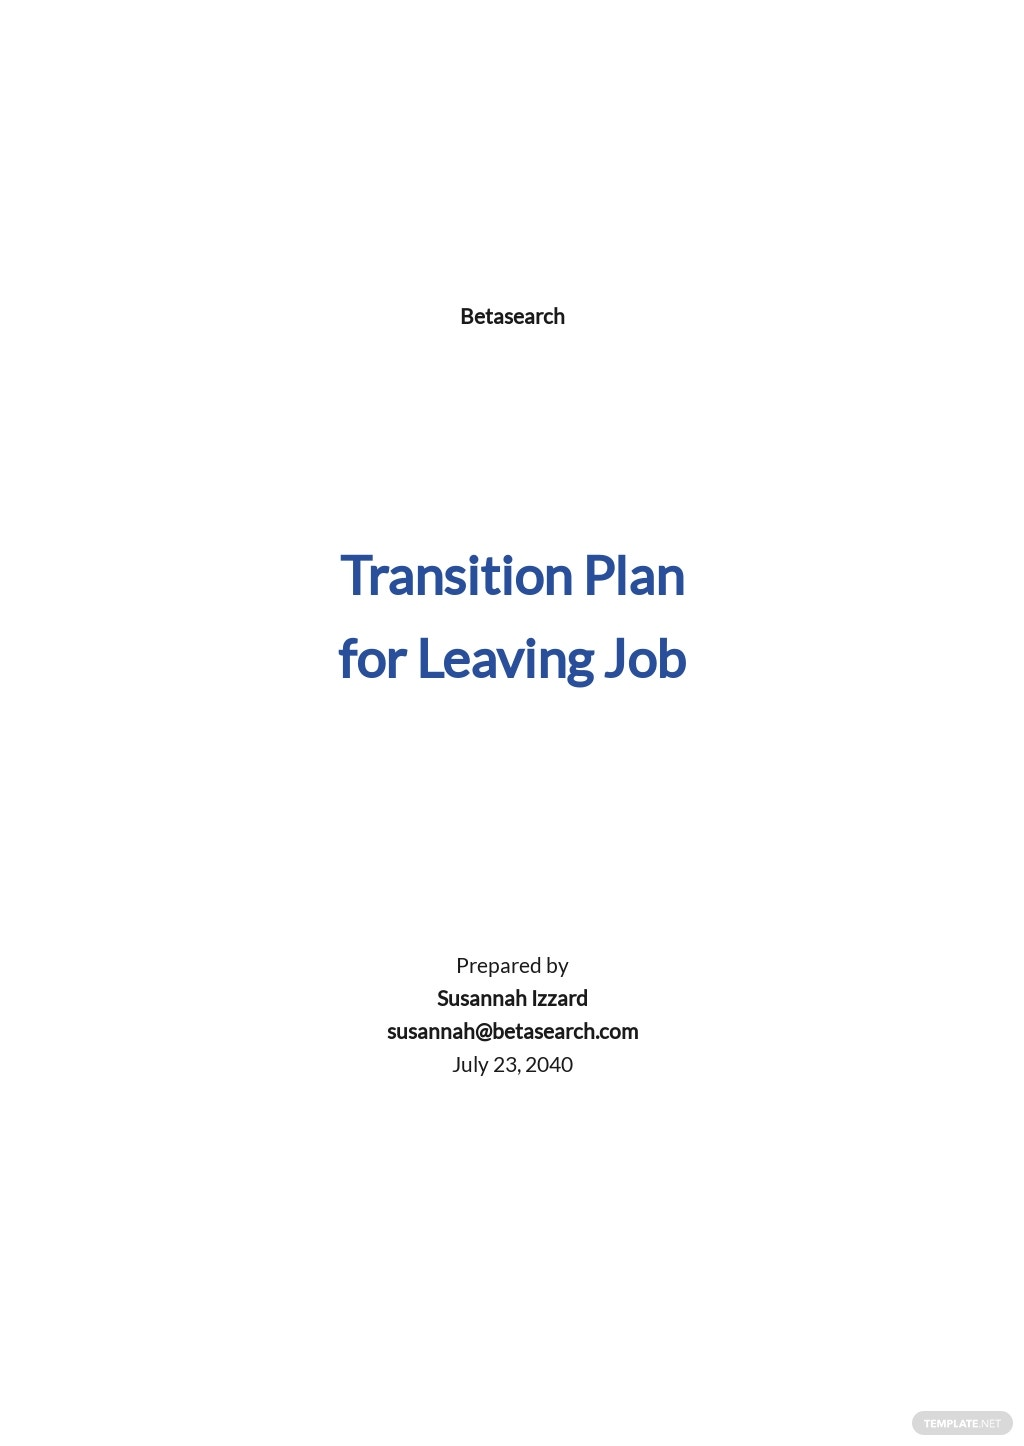 Transition Plan Template for Leaving Job Template